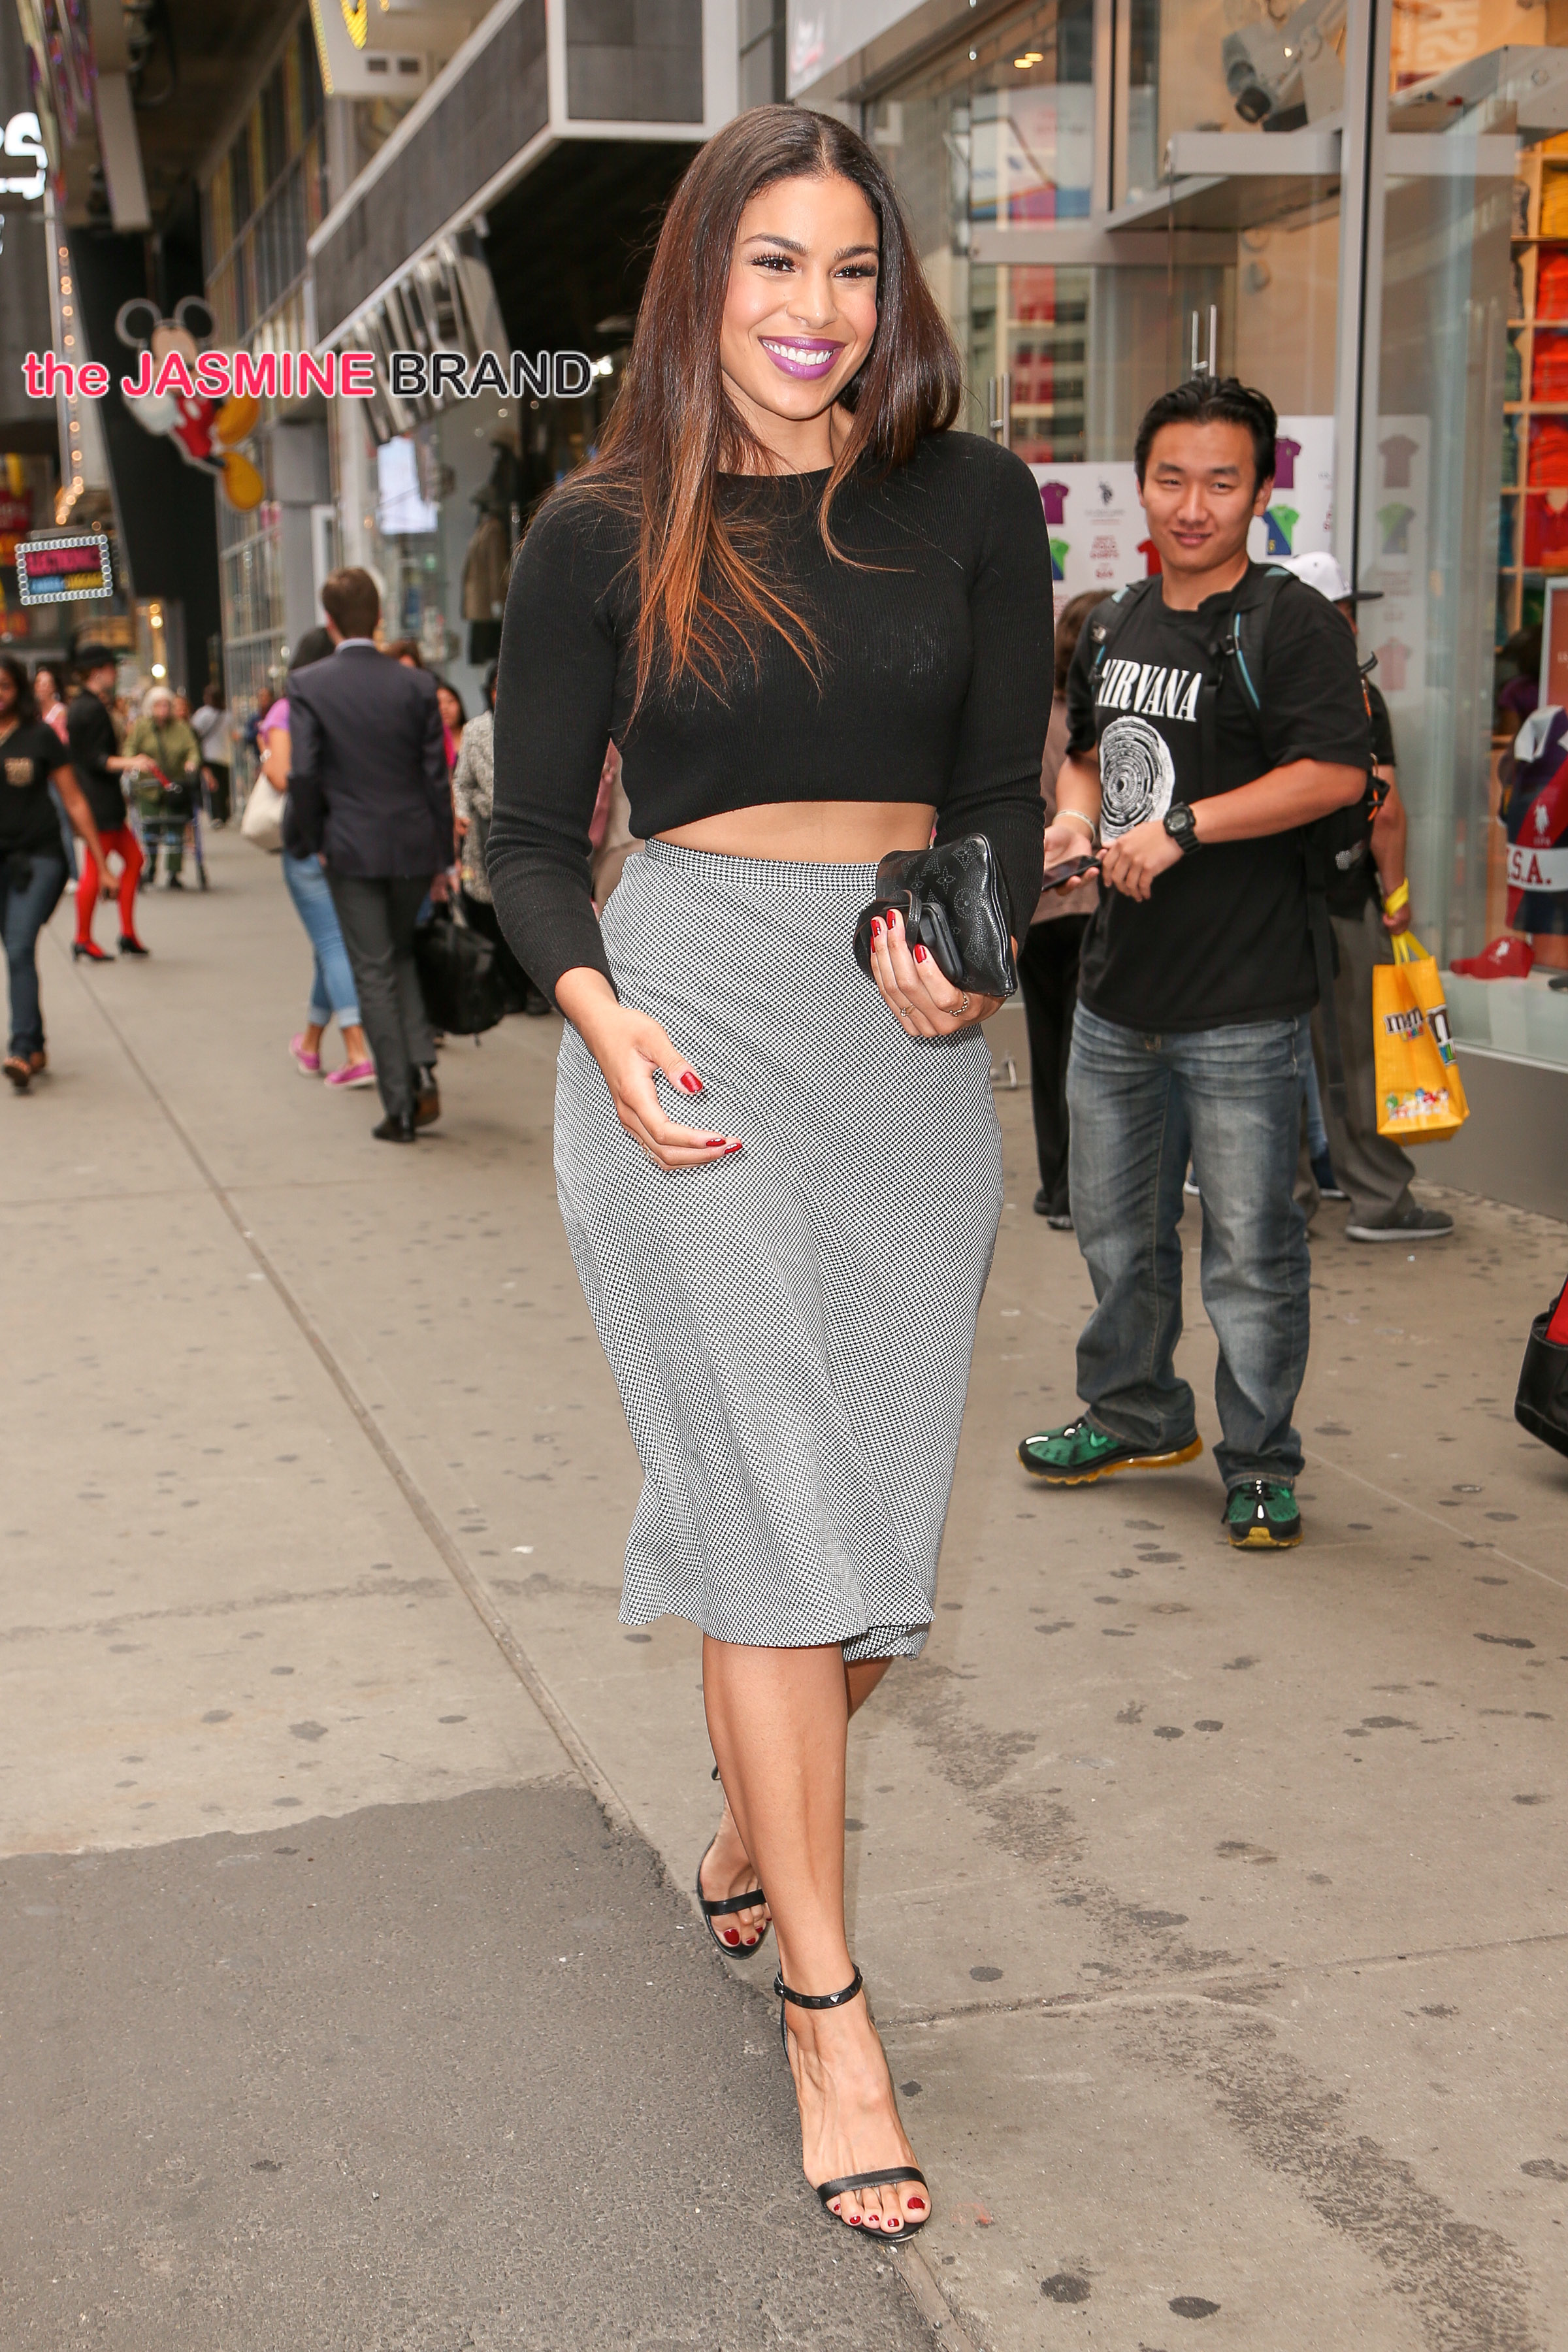 Jordin Sparks spotted smiling as wearing a midriff top and grey skirt while walking in Times Square, New York City